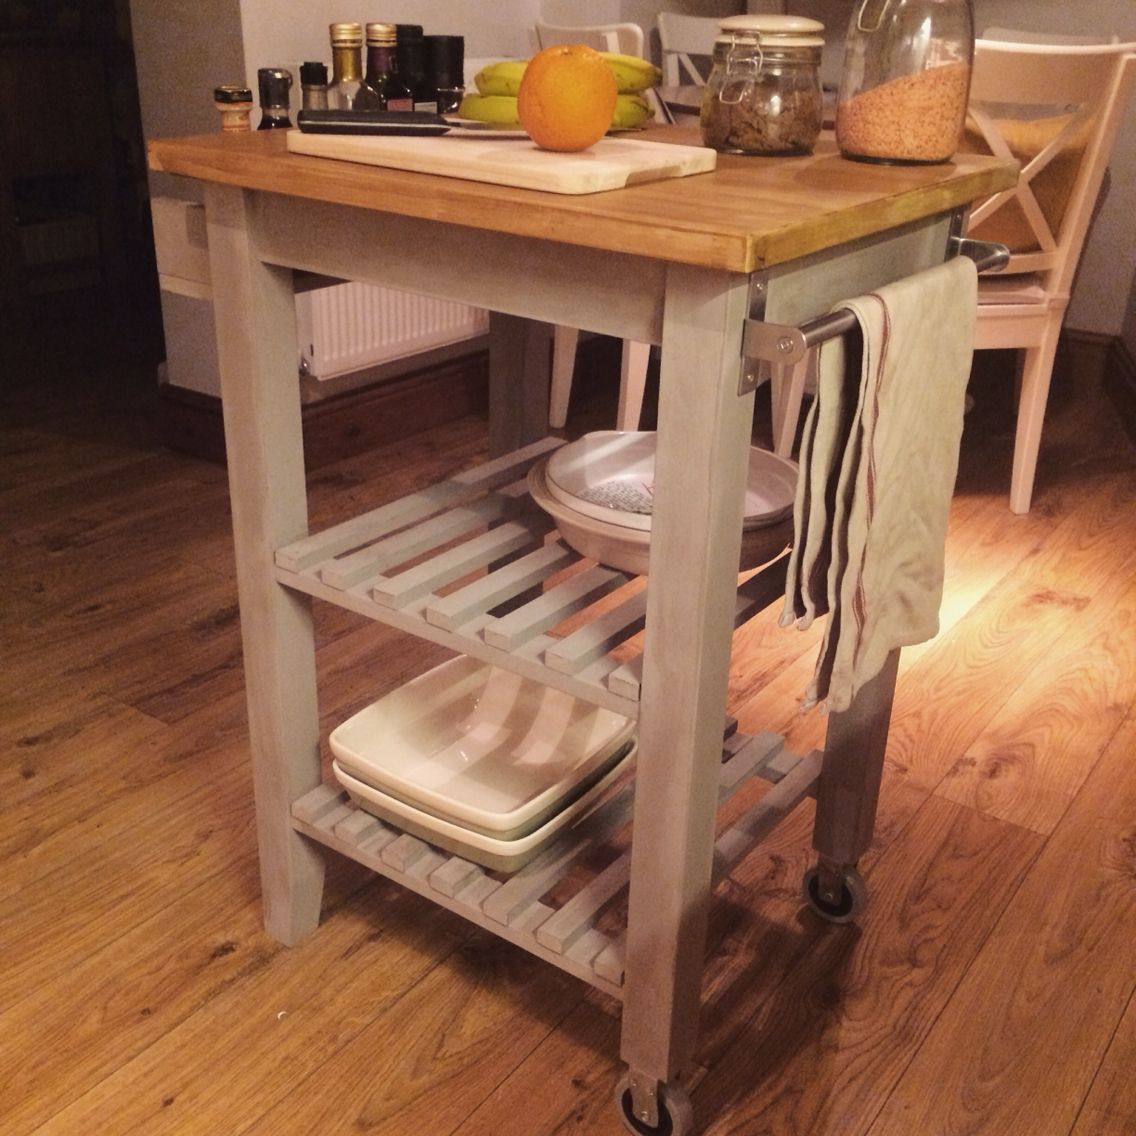 Ikea bekvam cart hack kitchen ideas pinterest cosas for Bekvam kitchen cart